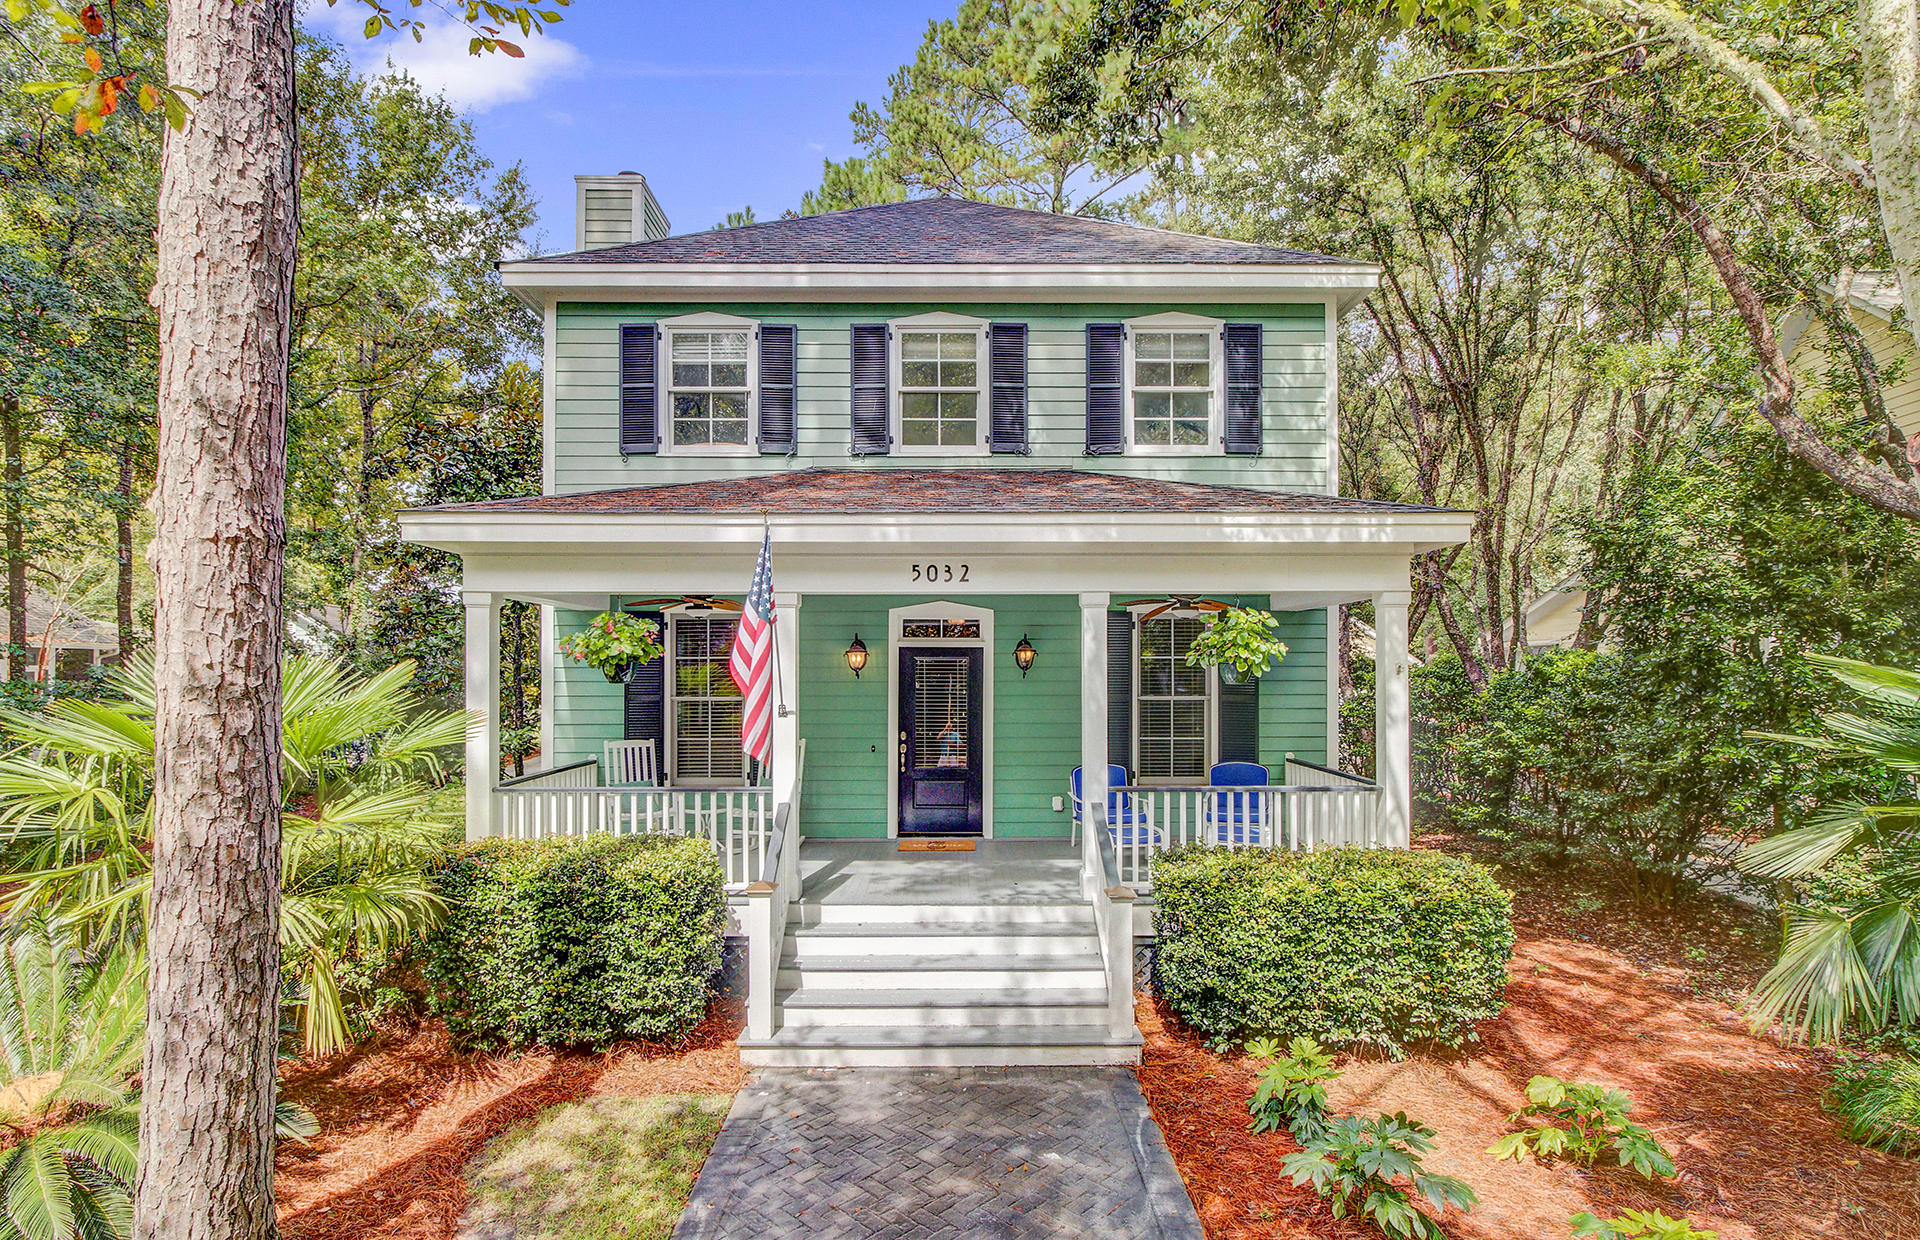 The Villages In St Johns Woods Homes For Sale - 5032 Coral Reef, Johns Island, SC - 40